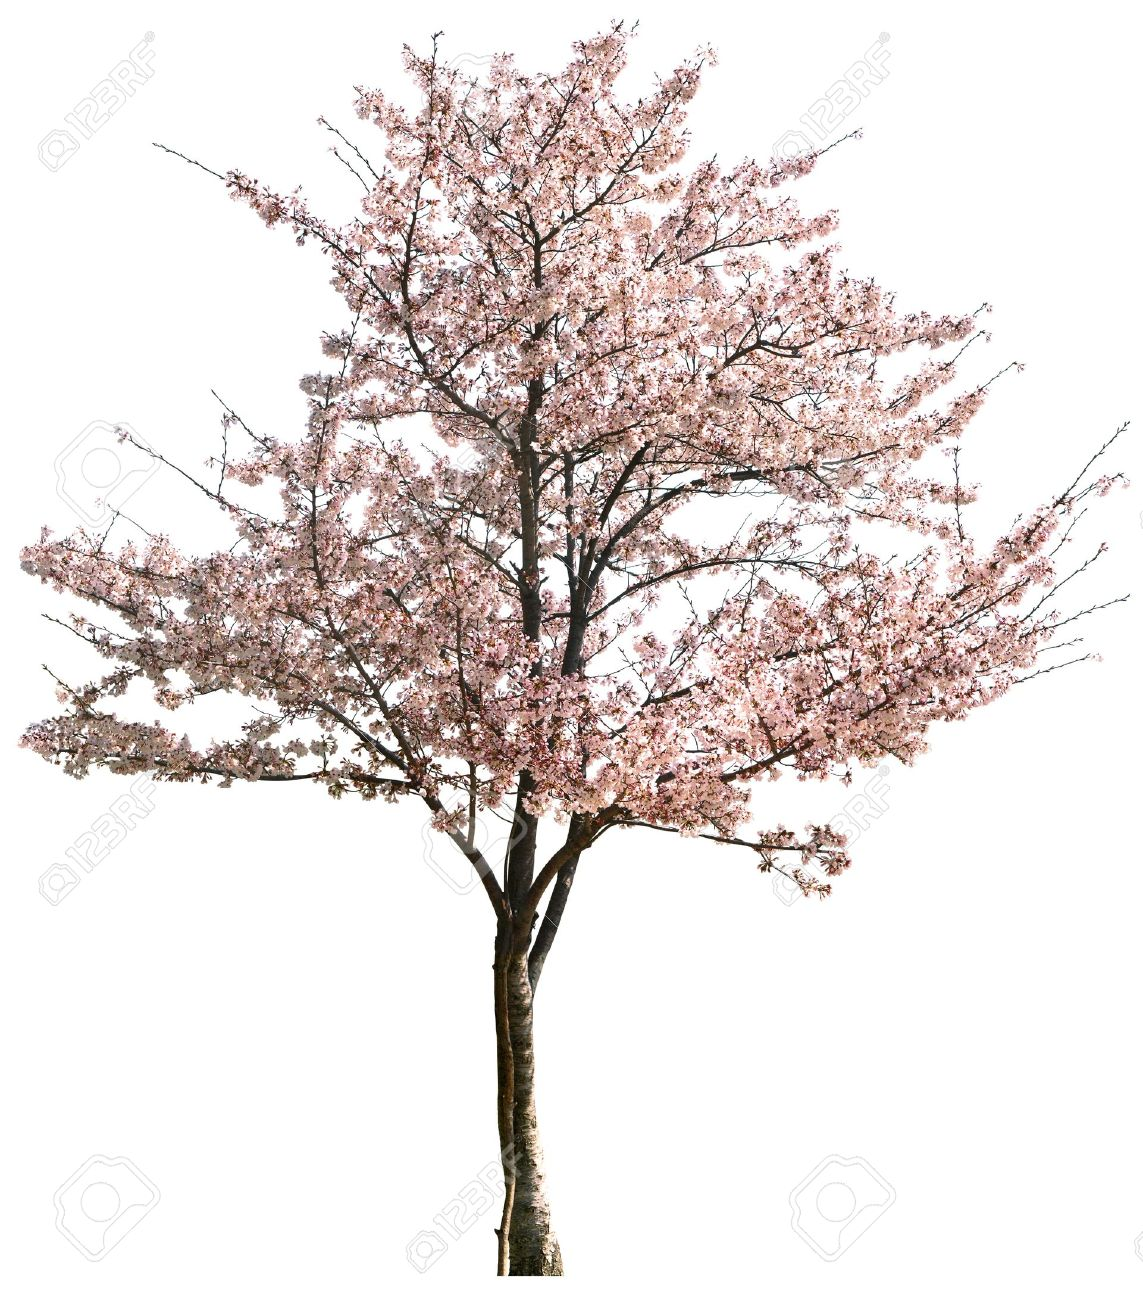 Pink Japanese apricot flower isolated on white in winter - 9653351